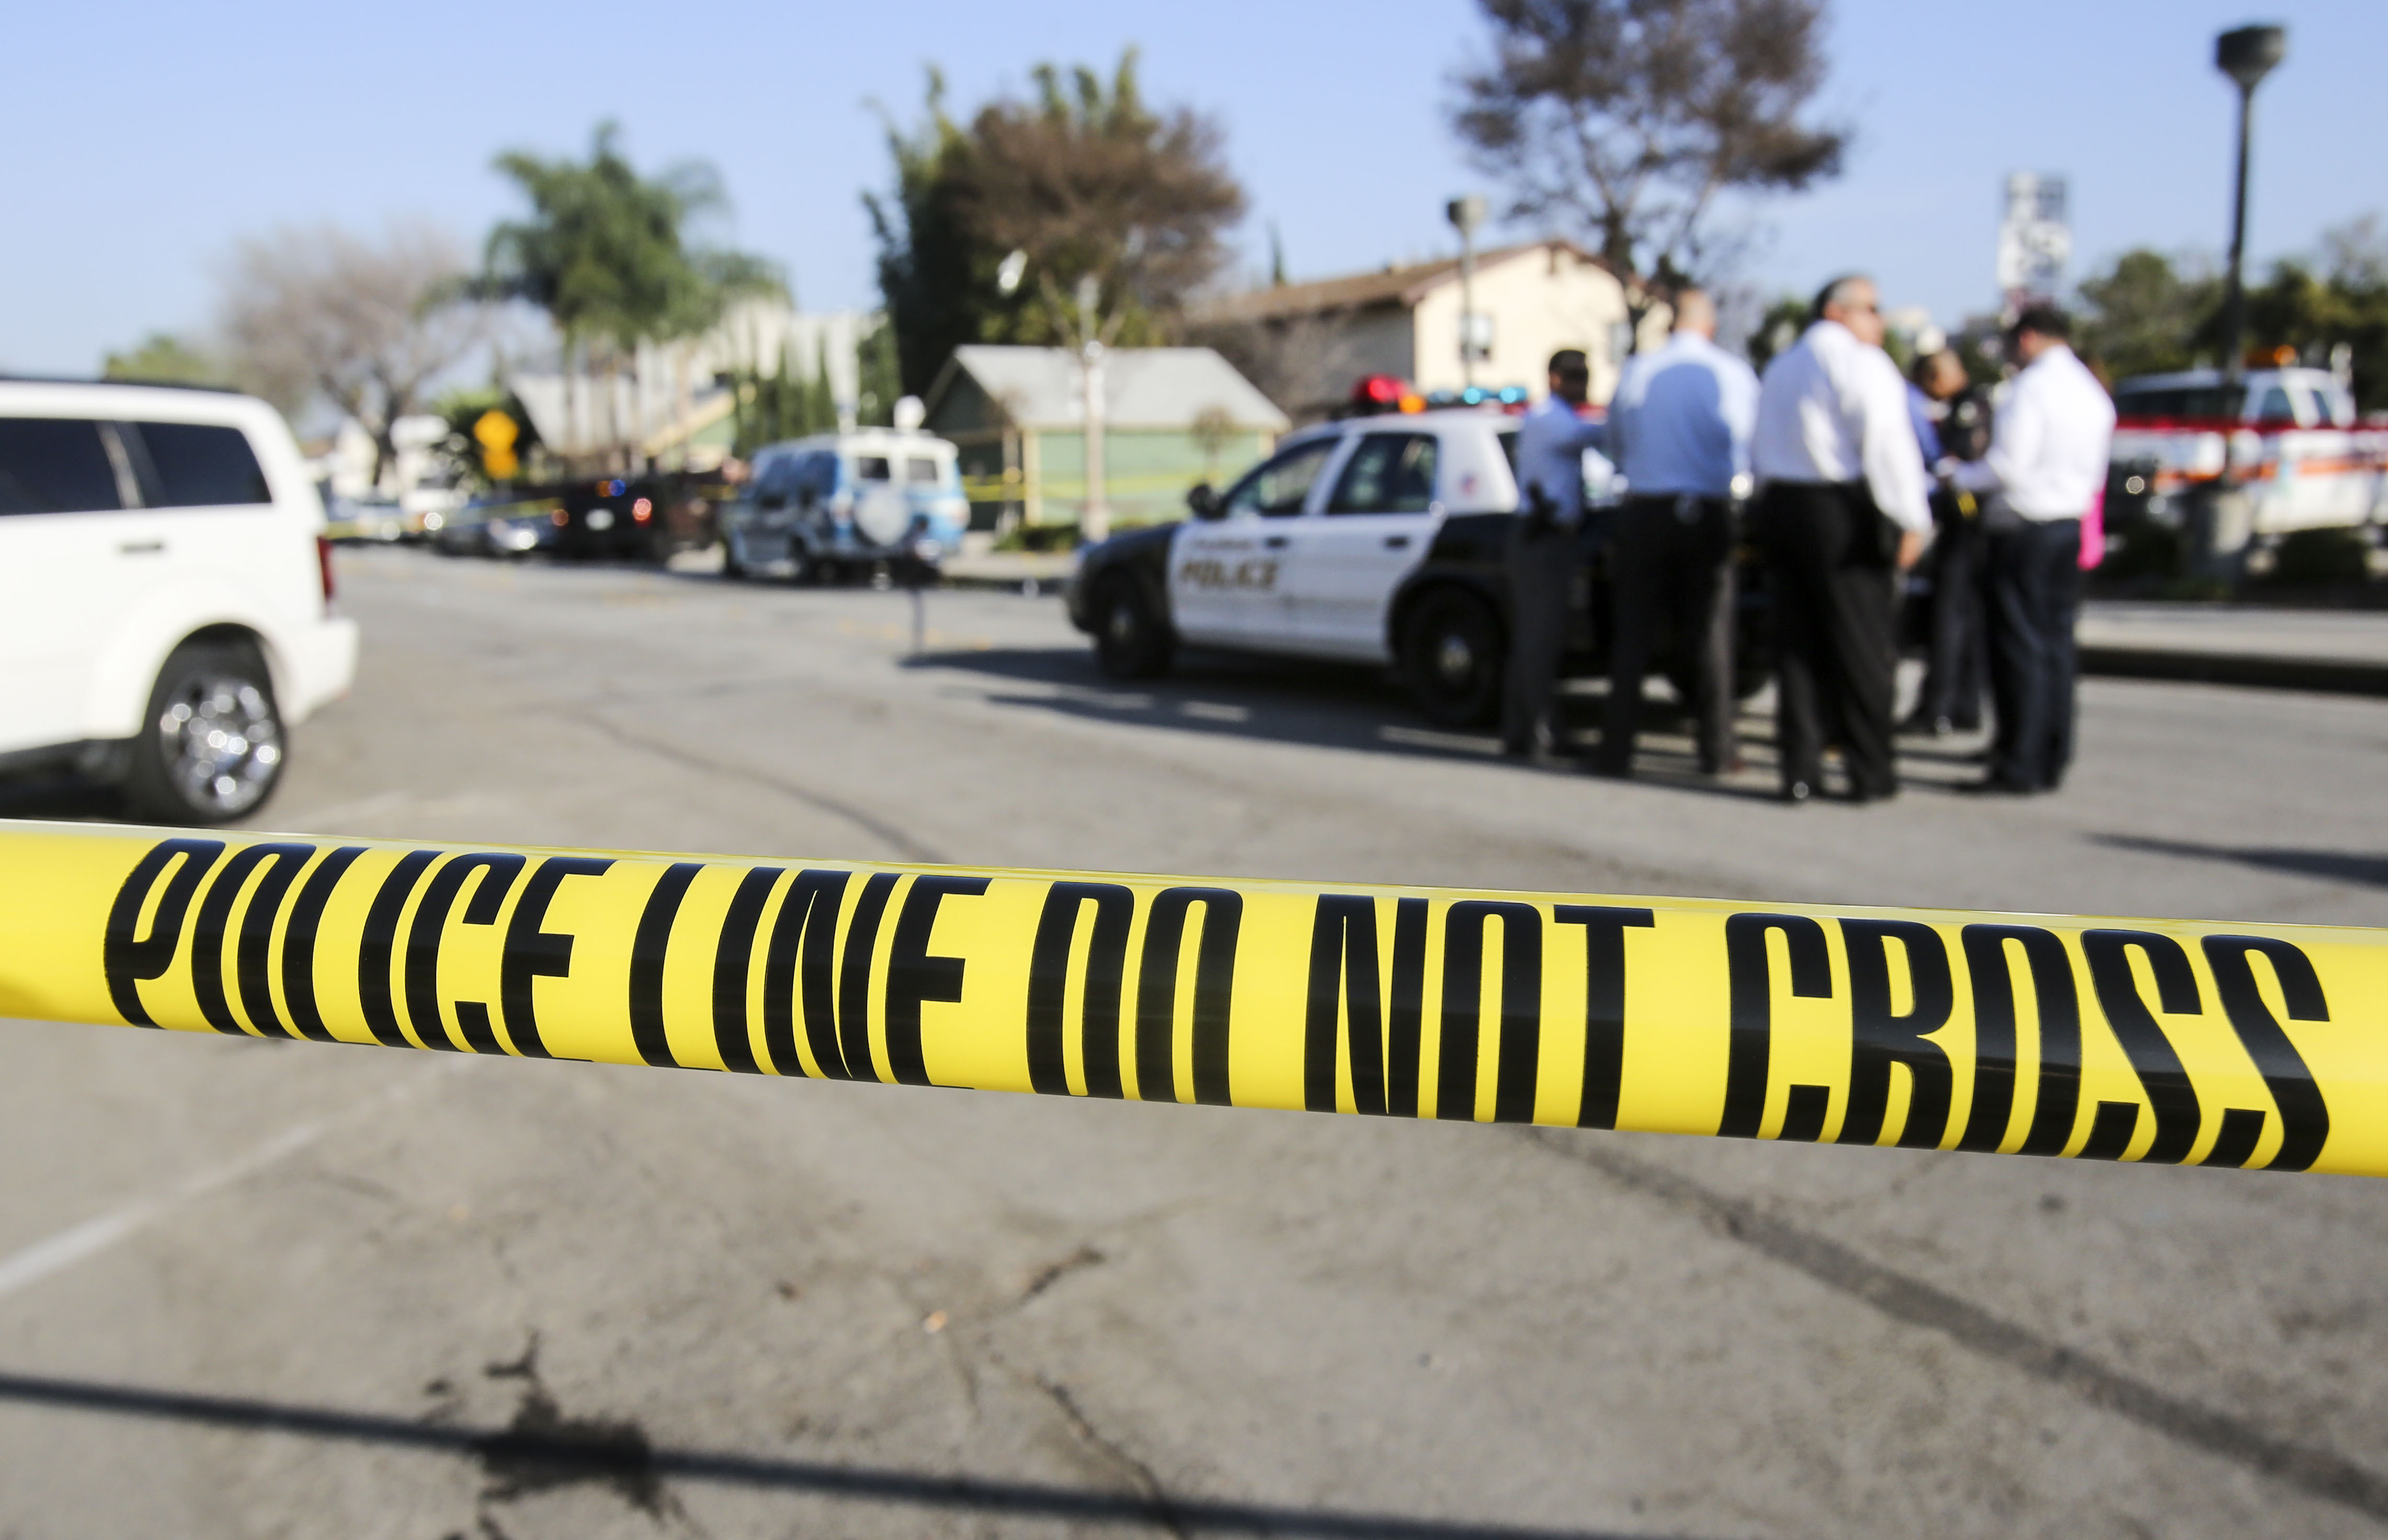 Police officers investigate the scene near Pearson Park in Anaheim, California,  February 27, 2016, after three counter-protesters were stabbed while clashing with Ku Klux Klan members staging a rally.